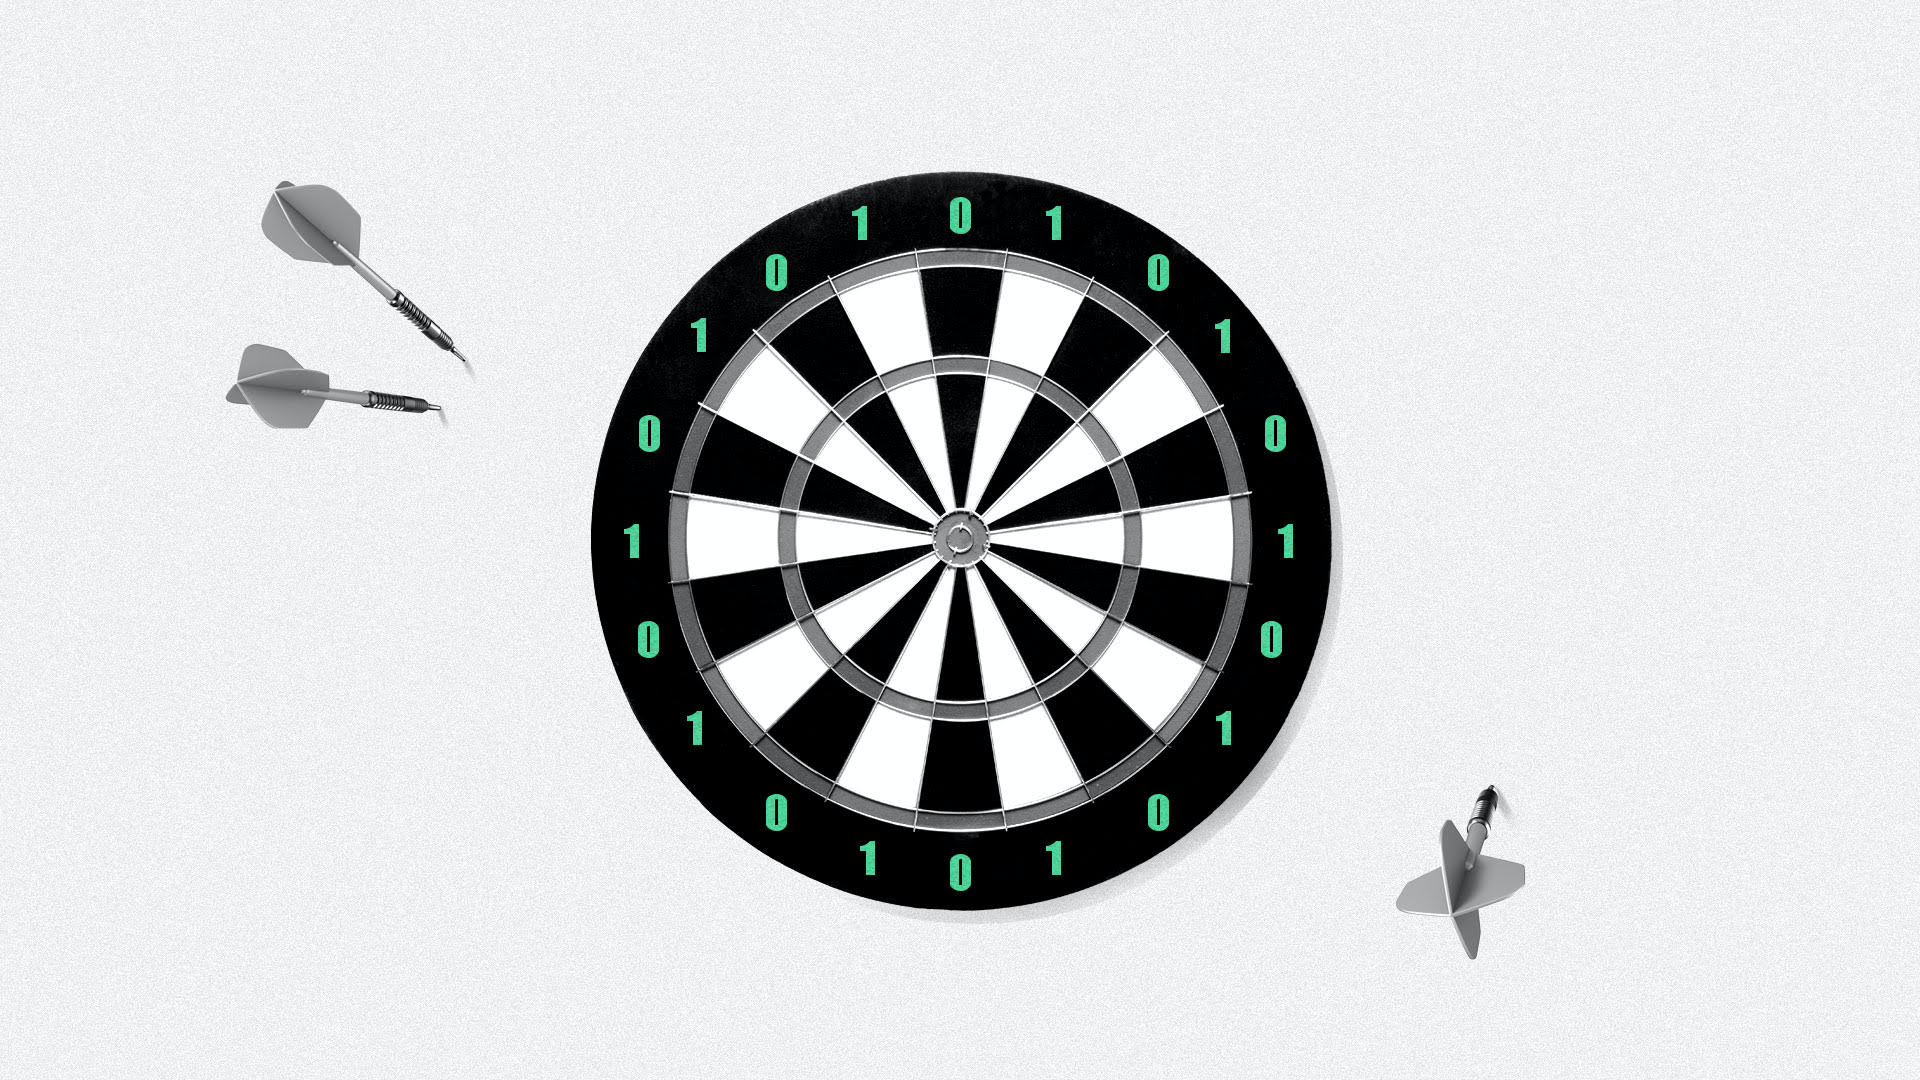 Illustration of a dart board with 1's and 0's. The darts have landed off the board.